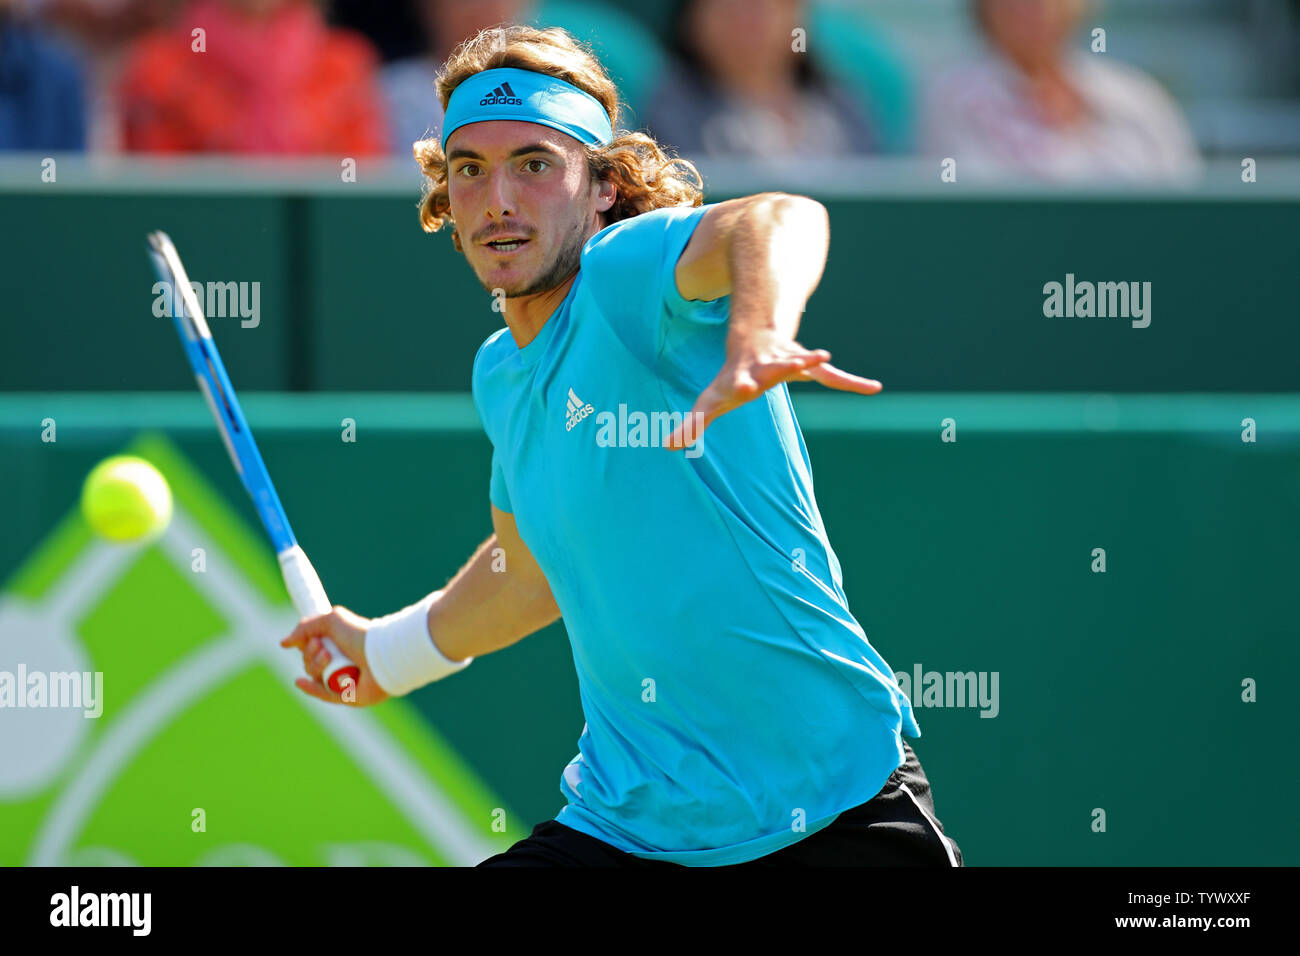 Stoke Poges England 26th June Stefanos Tsitsipas Gre Plays A Forehand During The Boodles Tennis Challenge